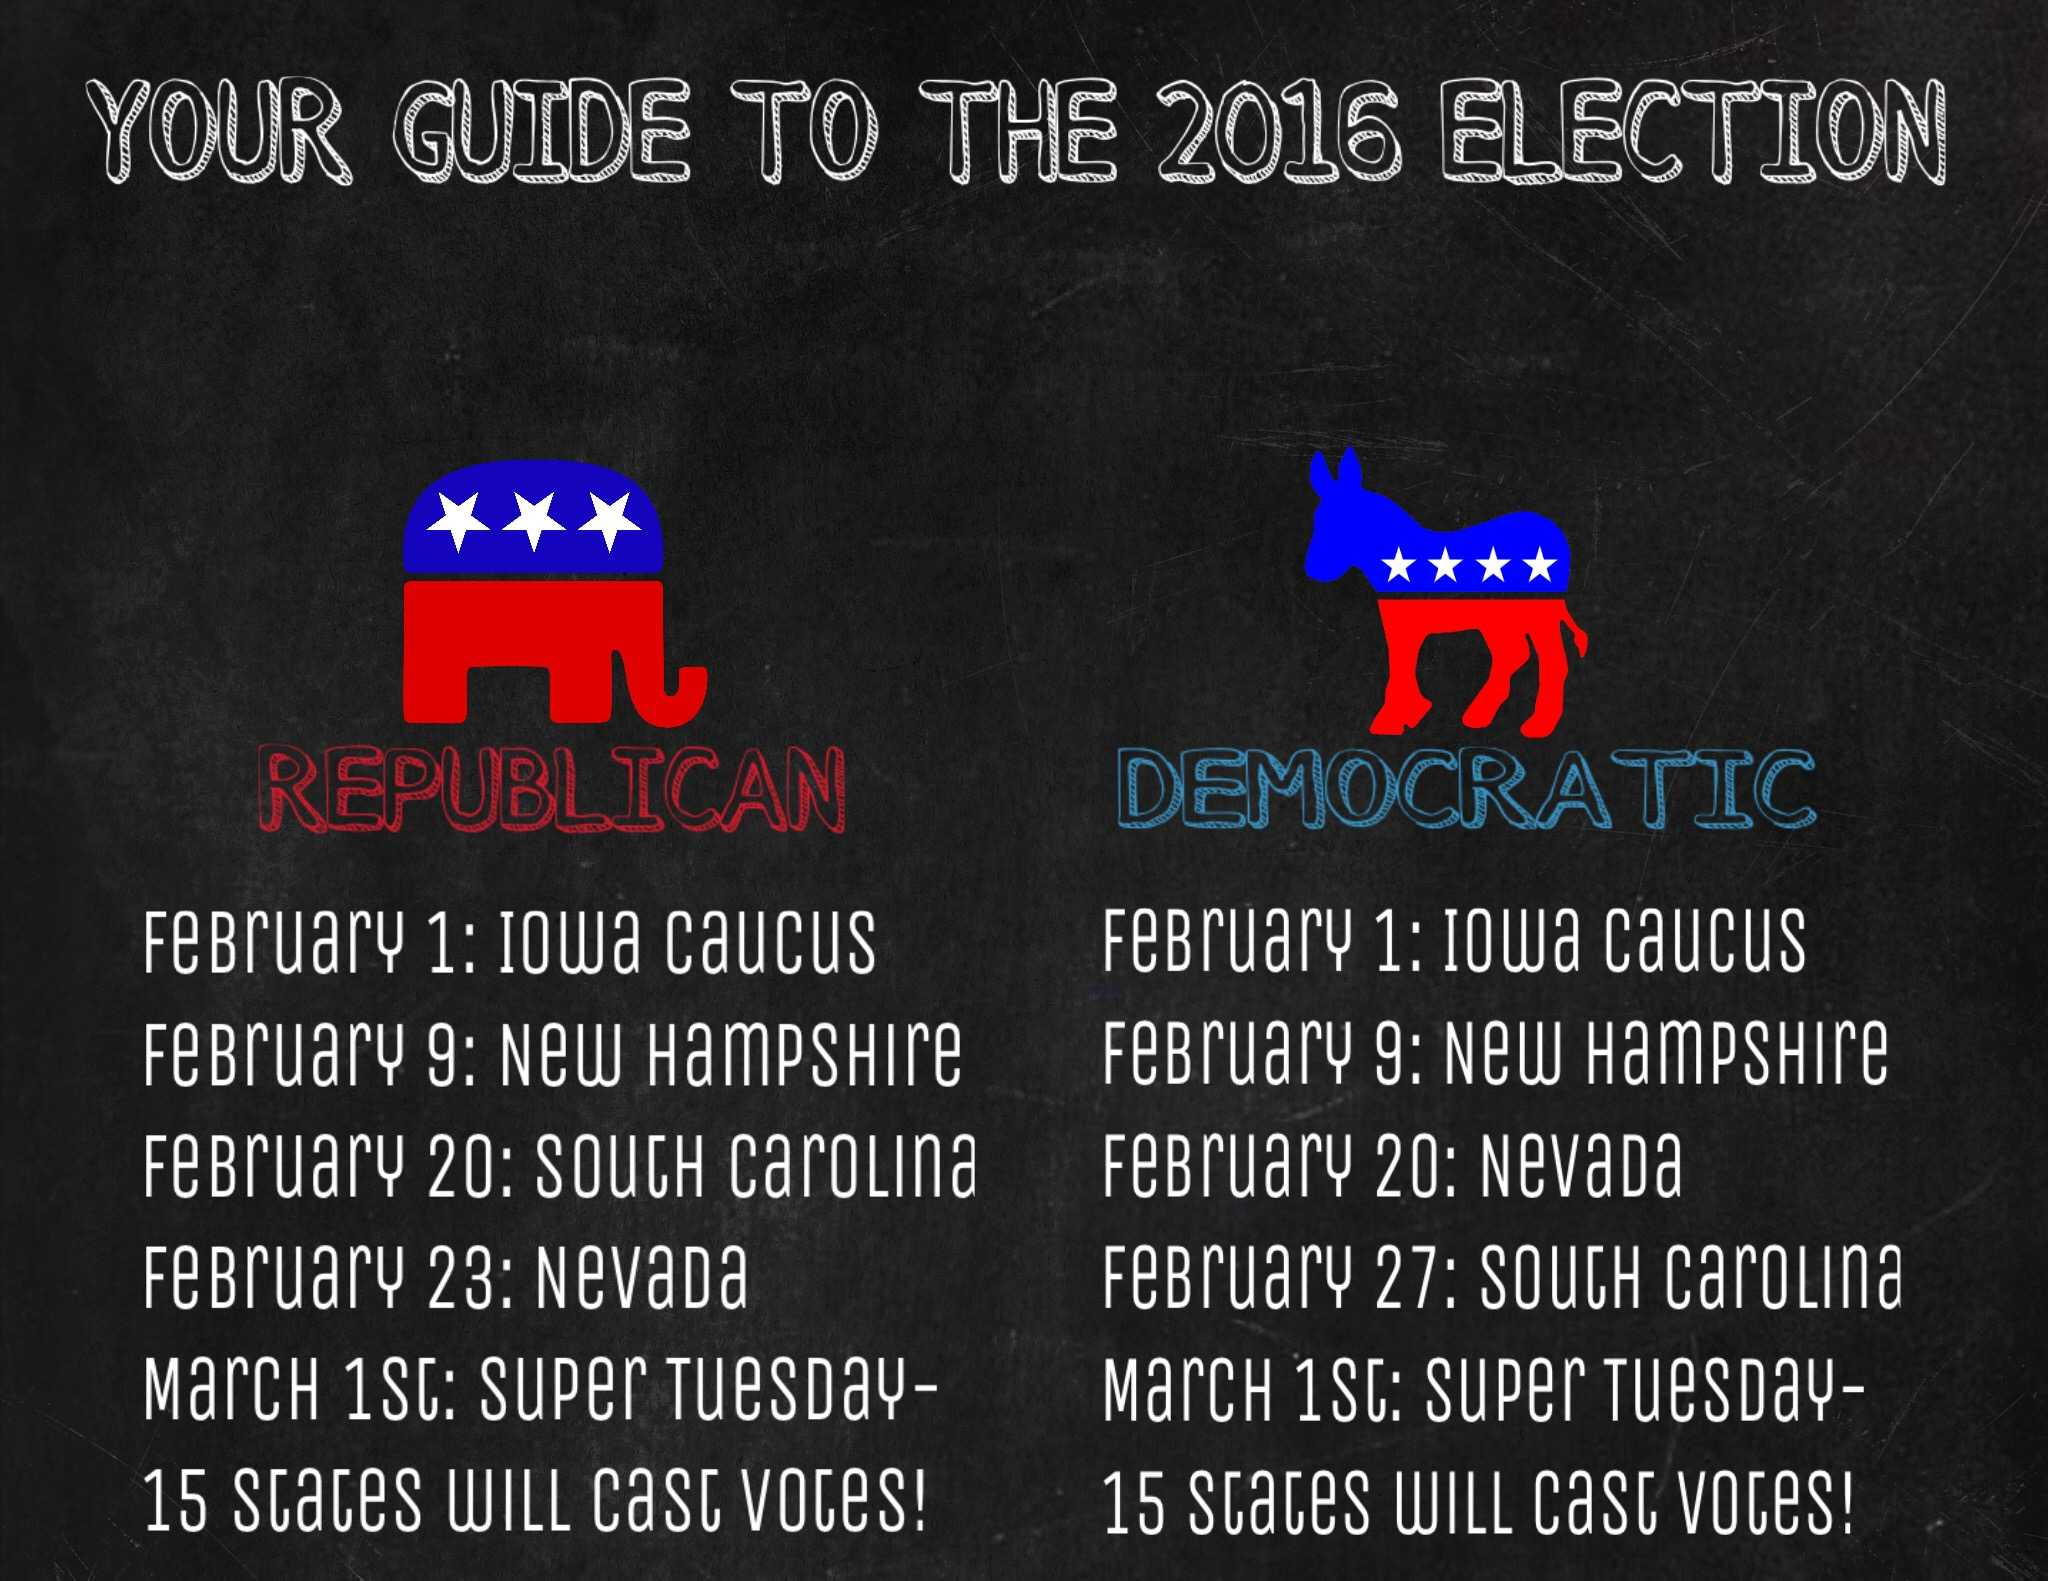 Here are your voting dates until Super Tuesday